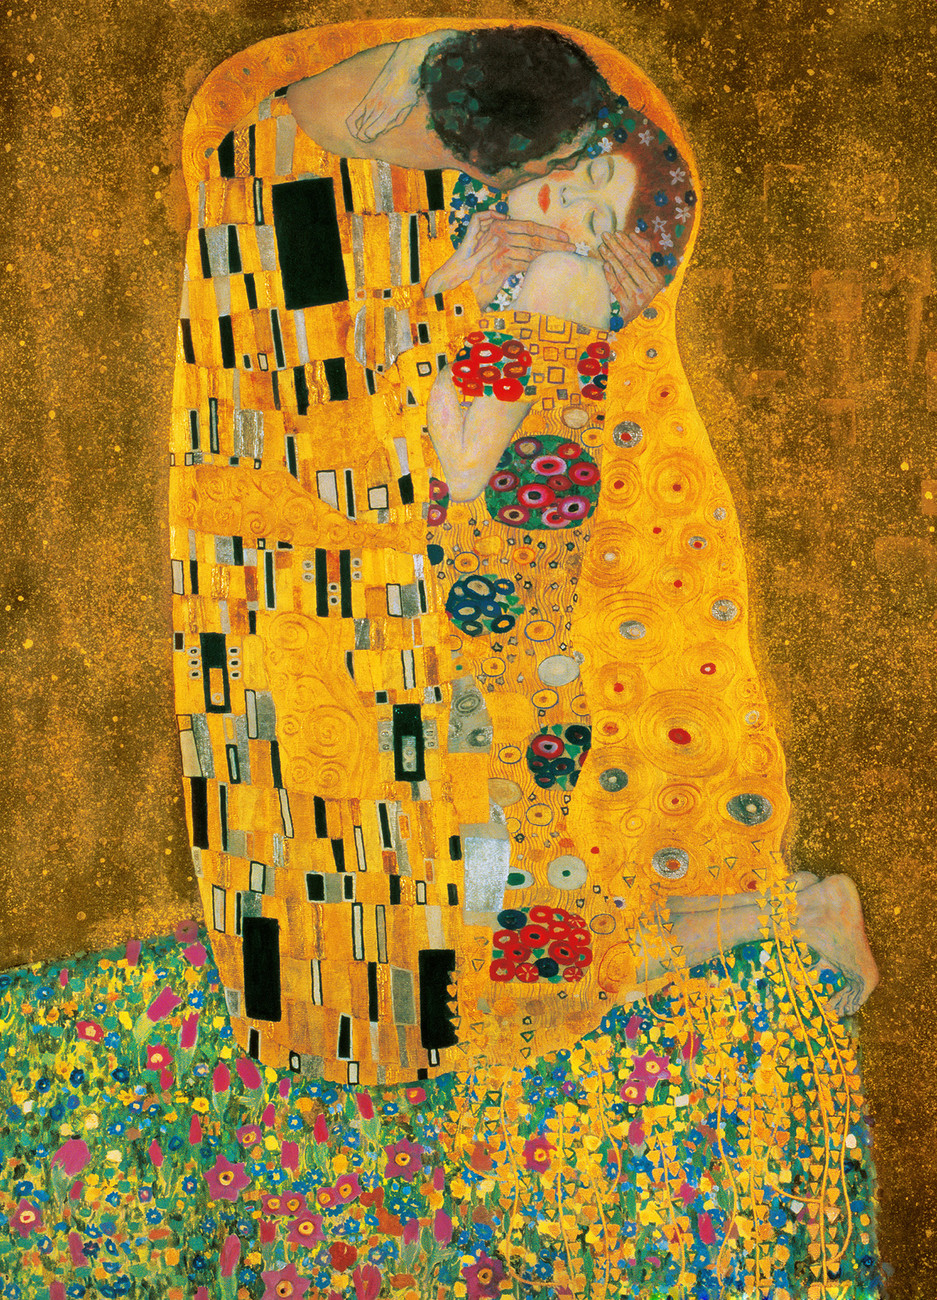 https://media.thisisgallery.com/wp-content/uploads/2018/12/gustavklimt_01.jpg